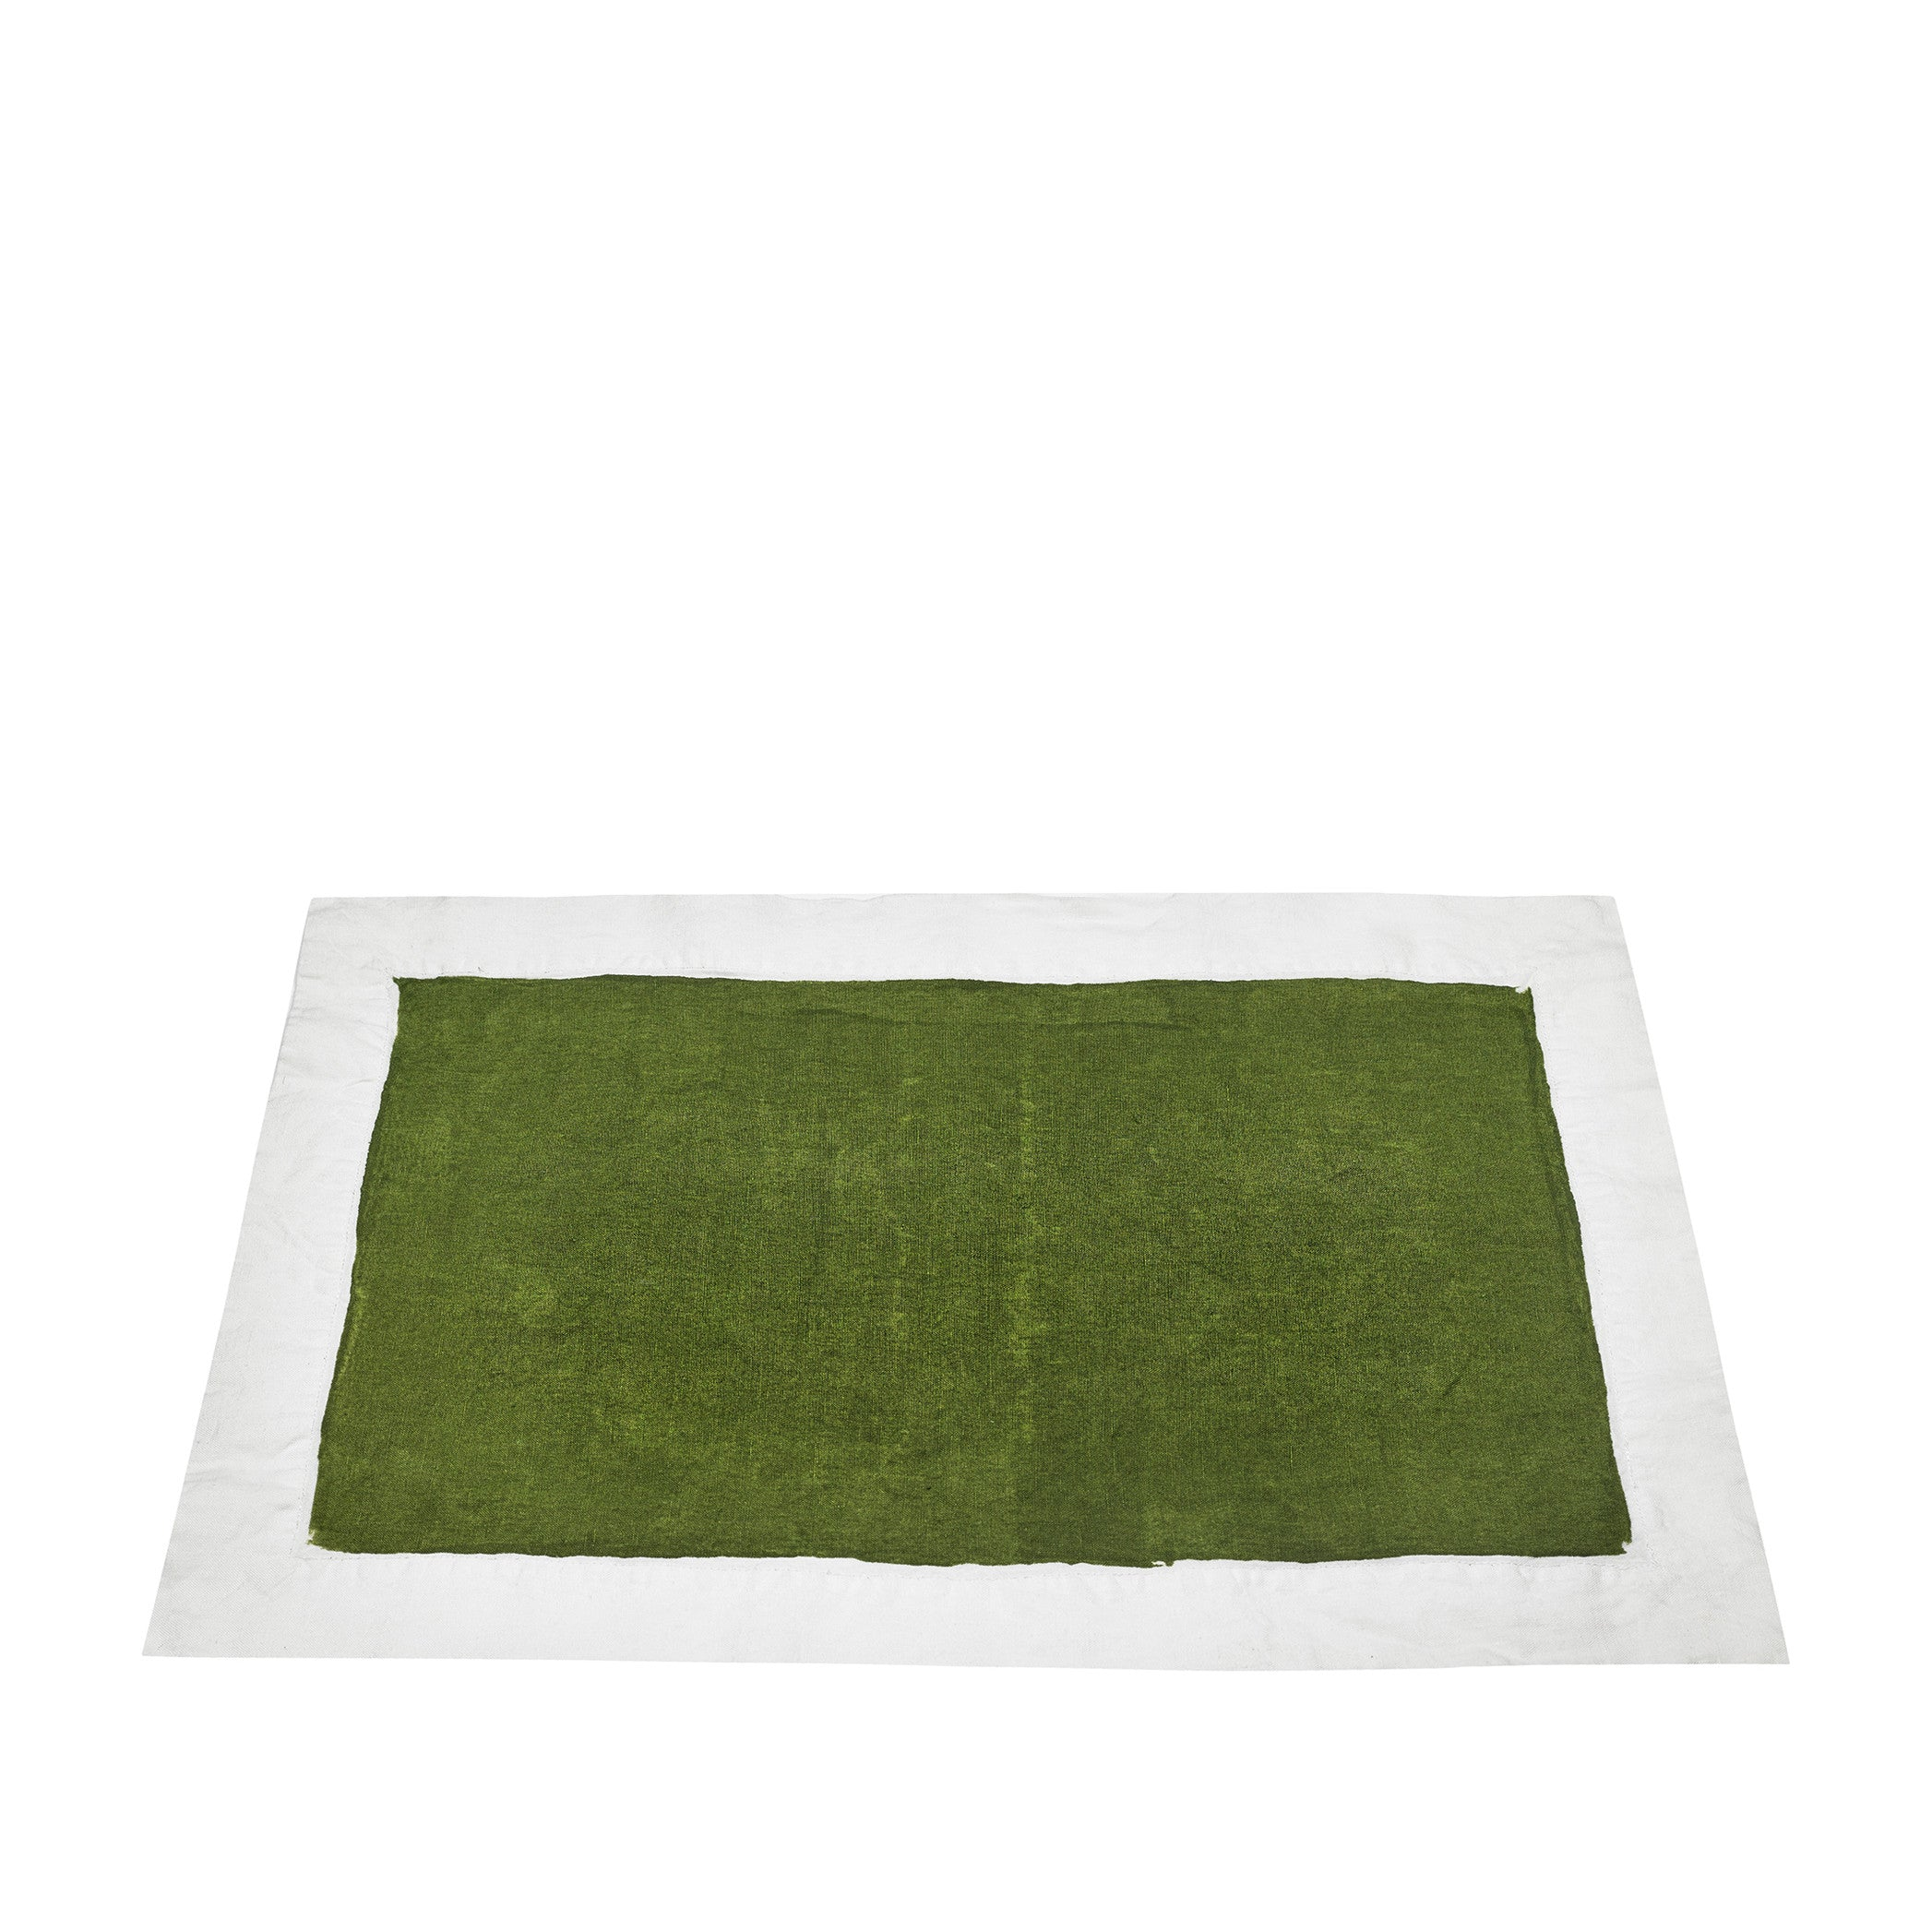 Hand Painted Full Field Linen Placemat in Avocado Green